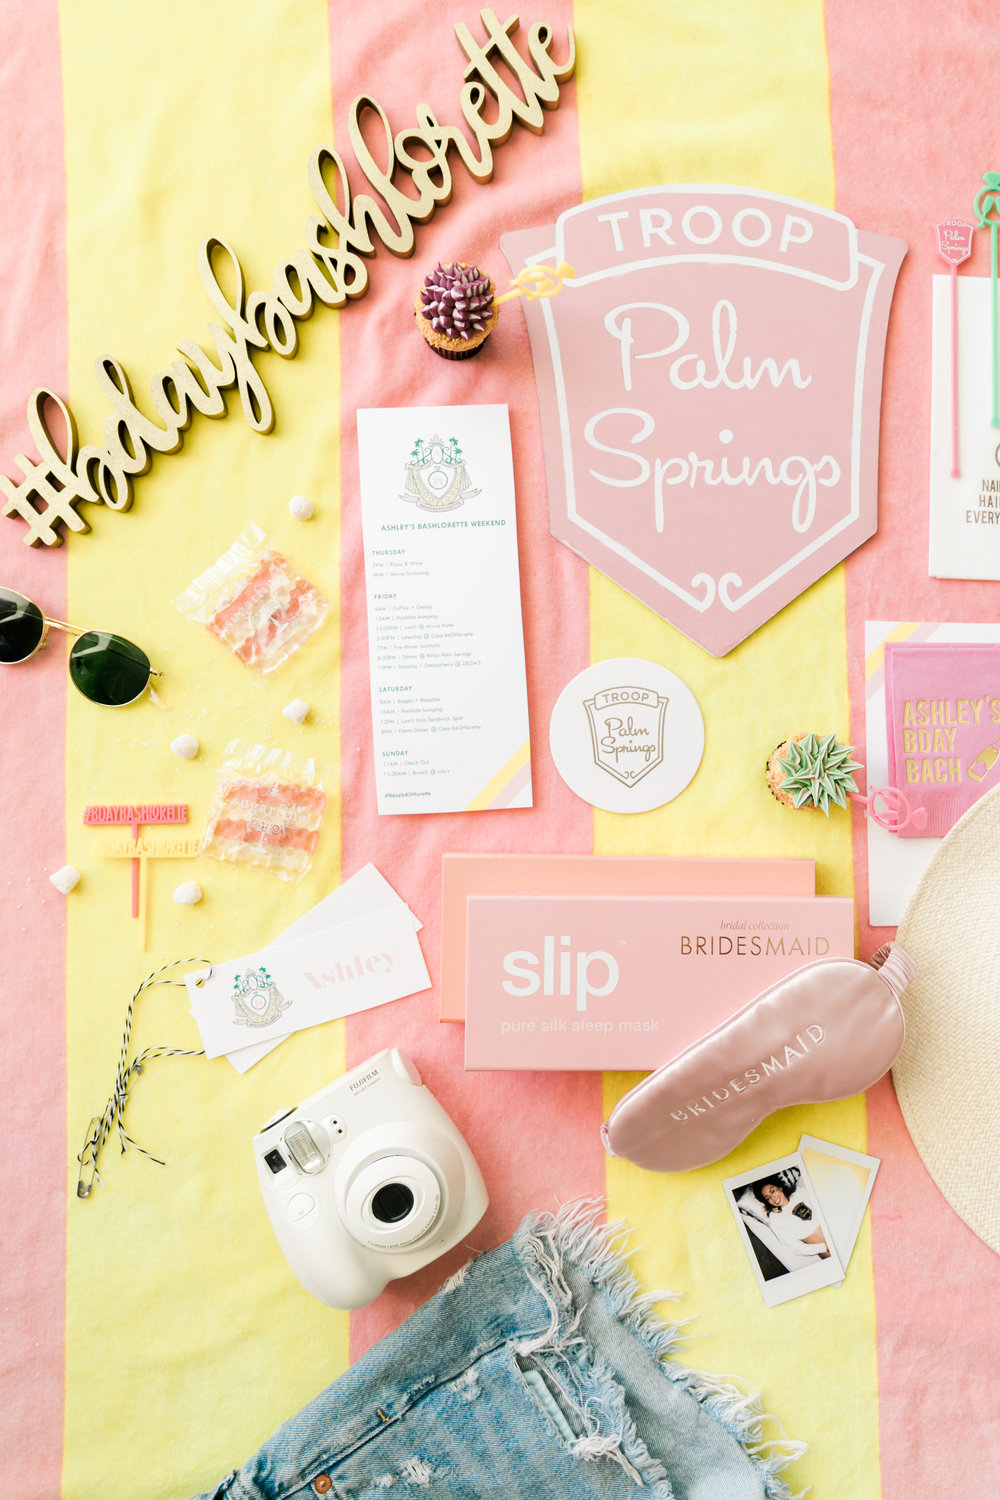 Palm Springs Bachelorette Decor: custom napkins, signs, drink stirrers, and sleep masks